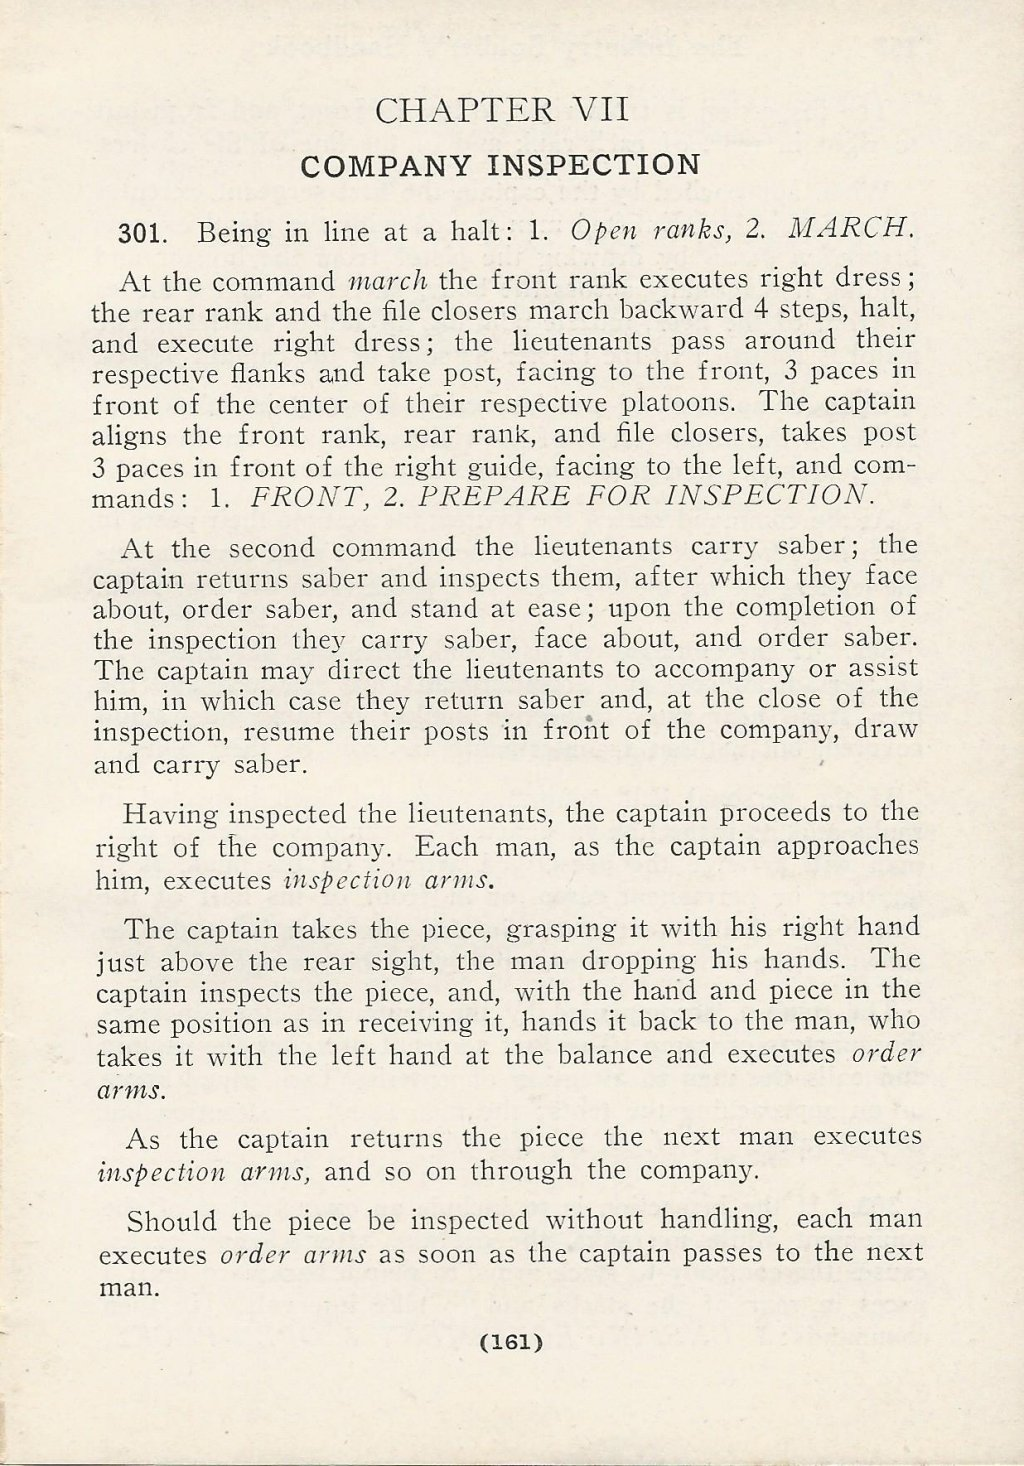 314th Infantry Regiment - Infantry Soldiers Handbook - Waldron - Page 161